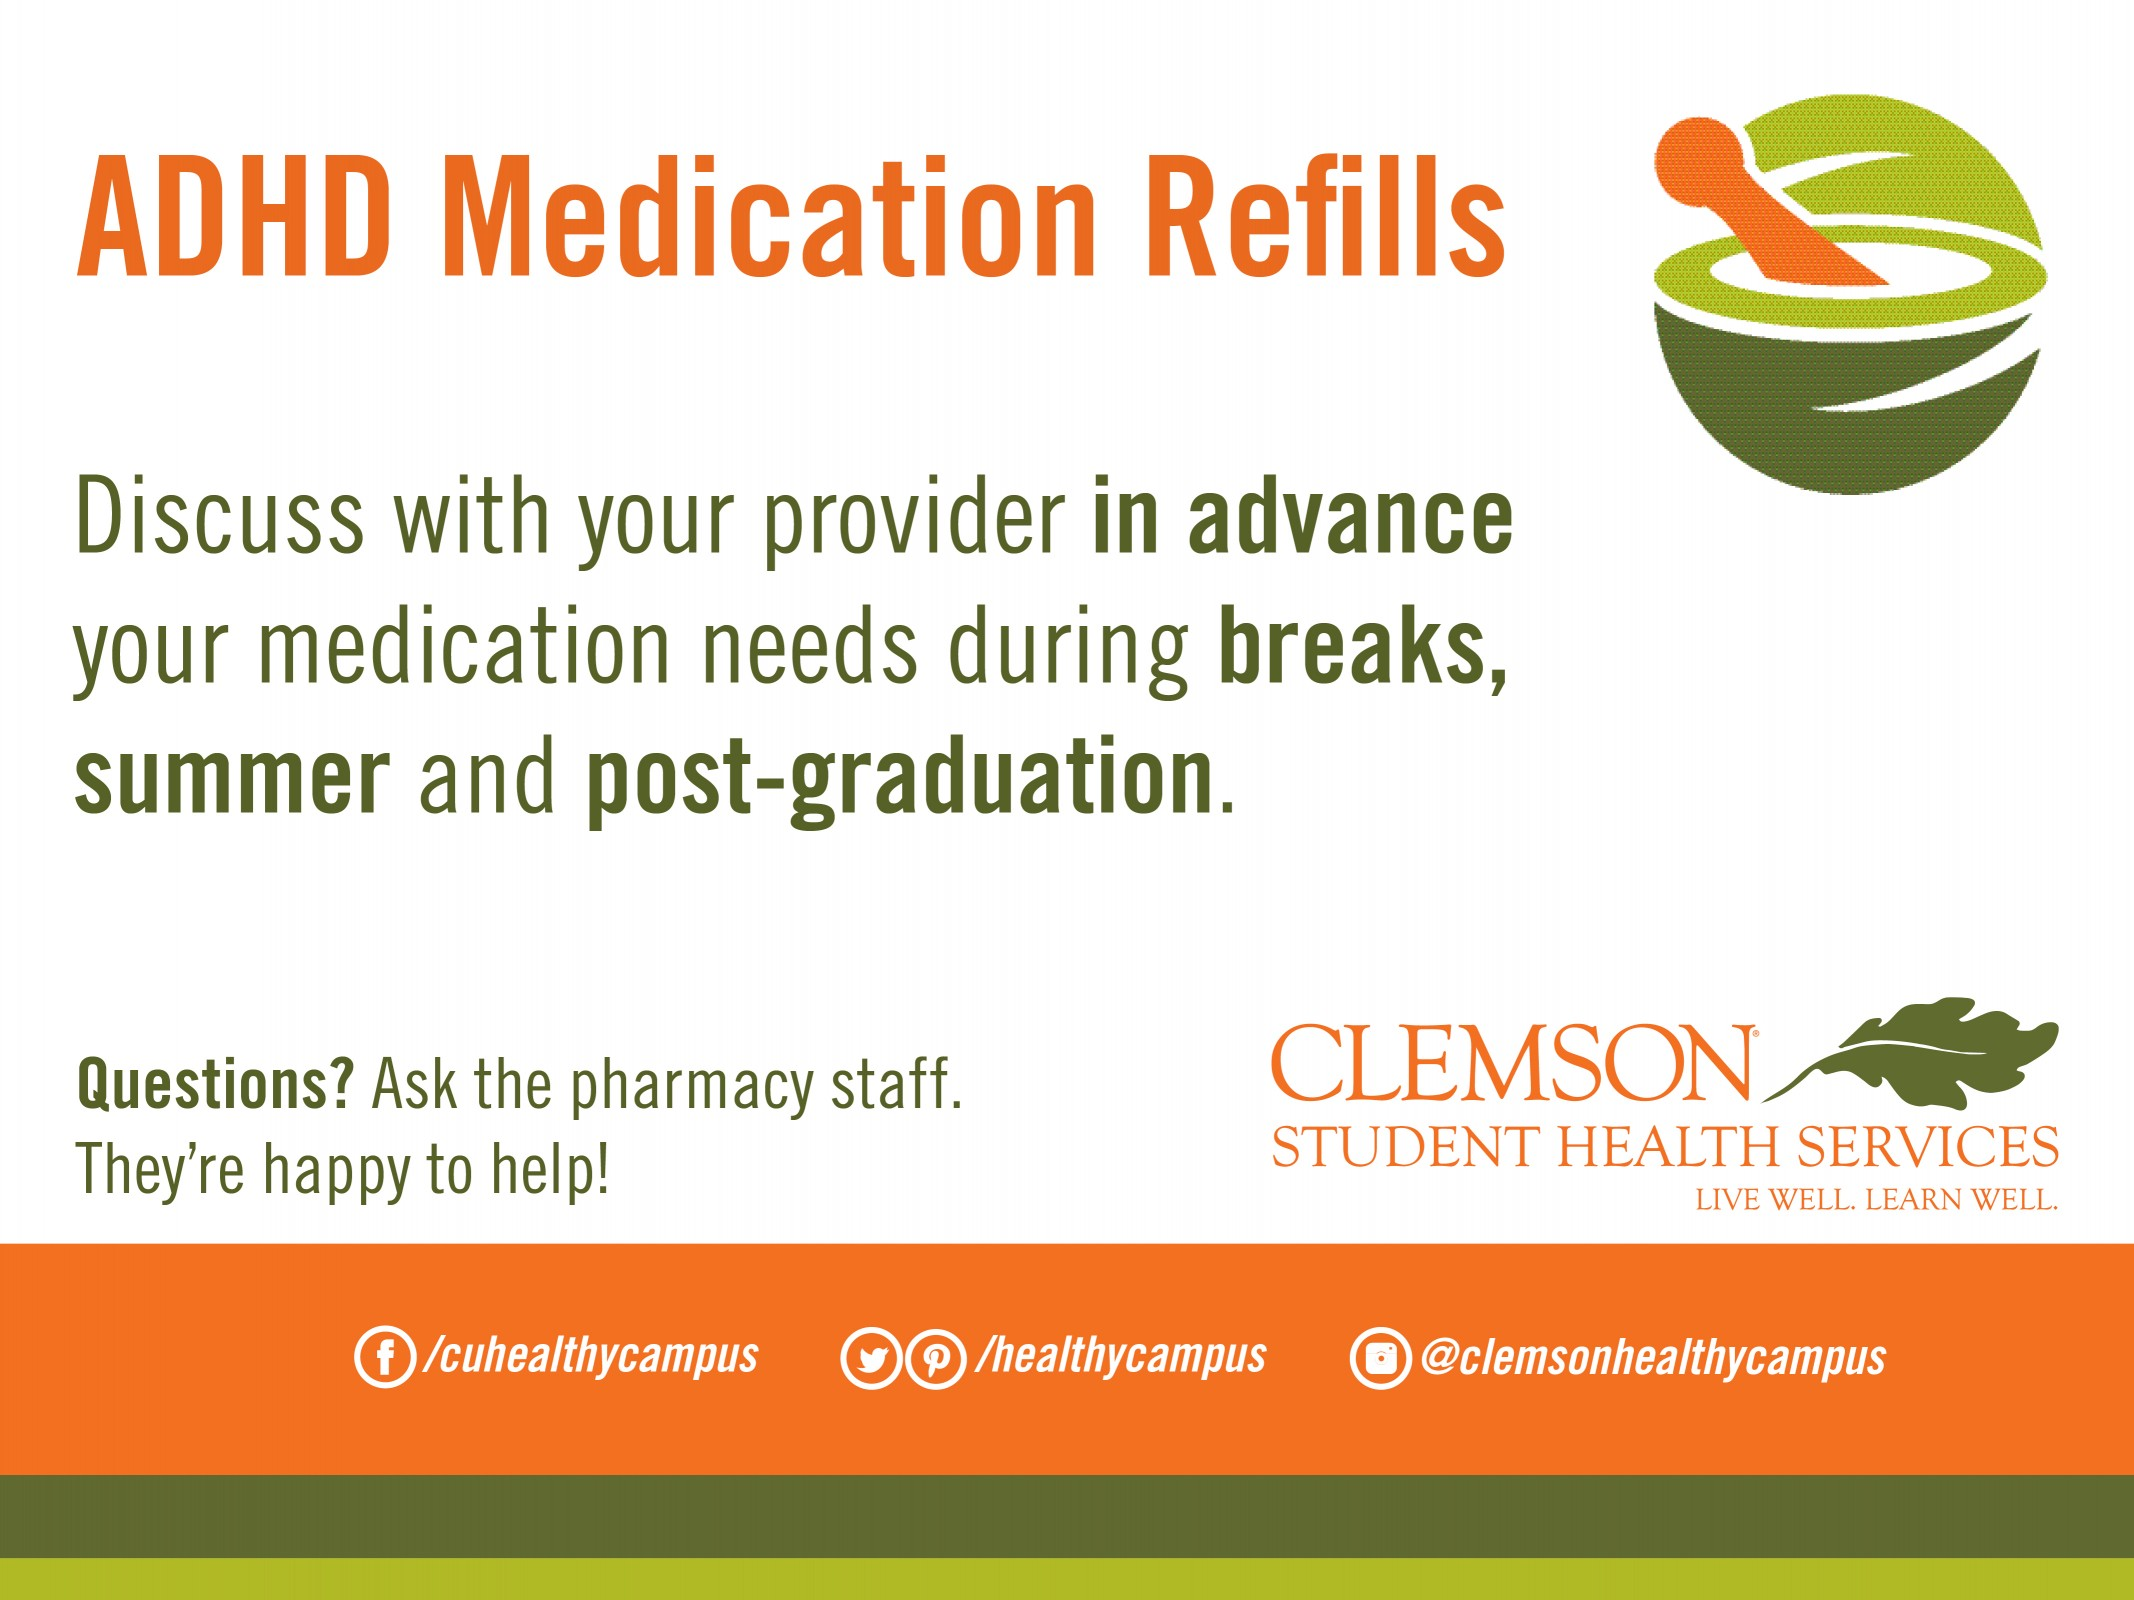 Talk to your provider in advance about ADHD medication refills